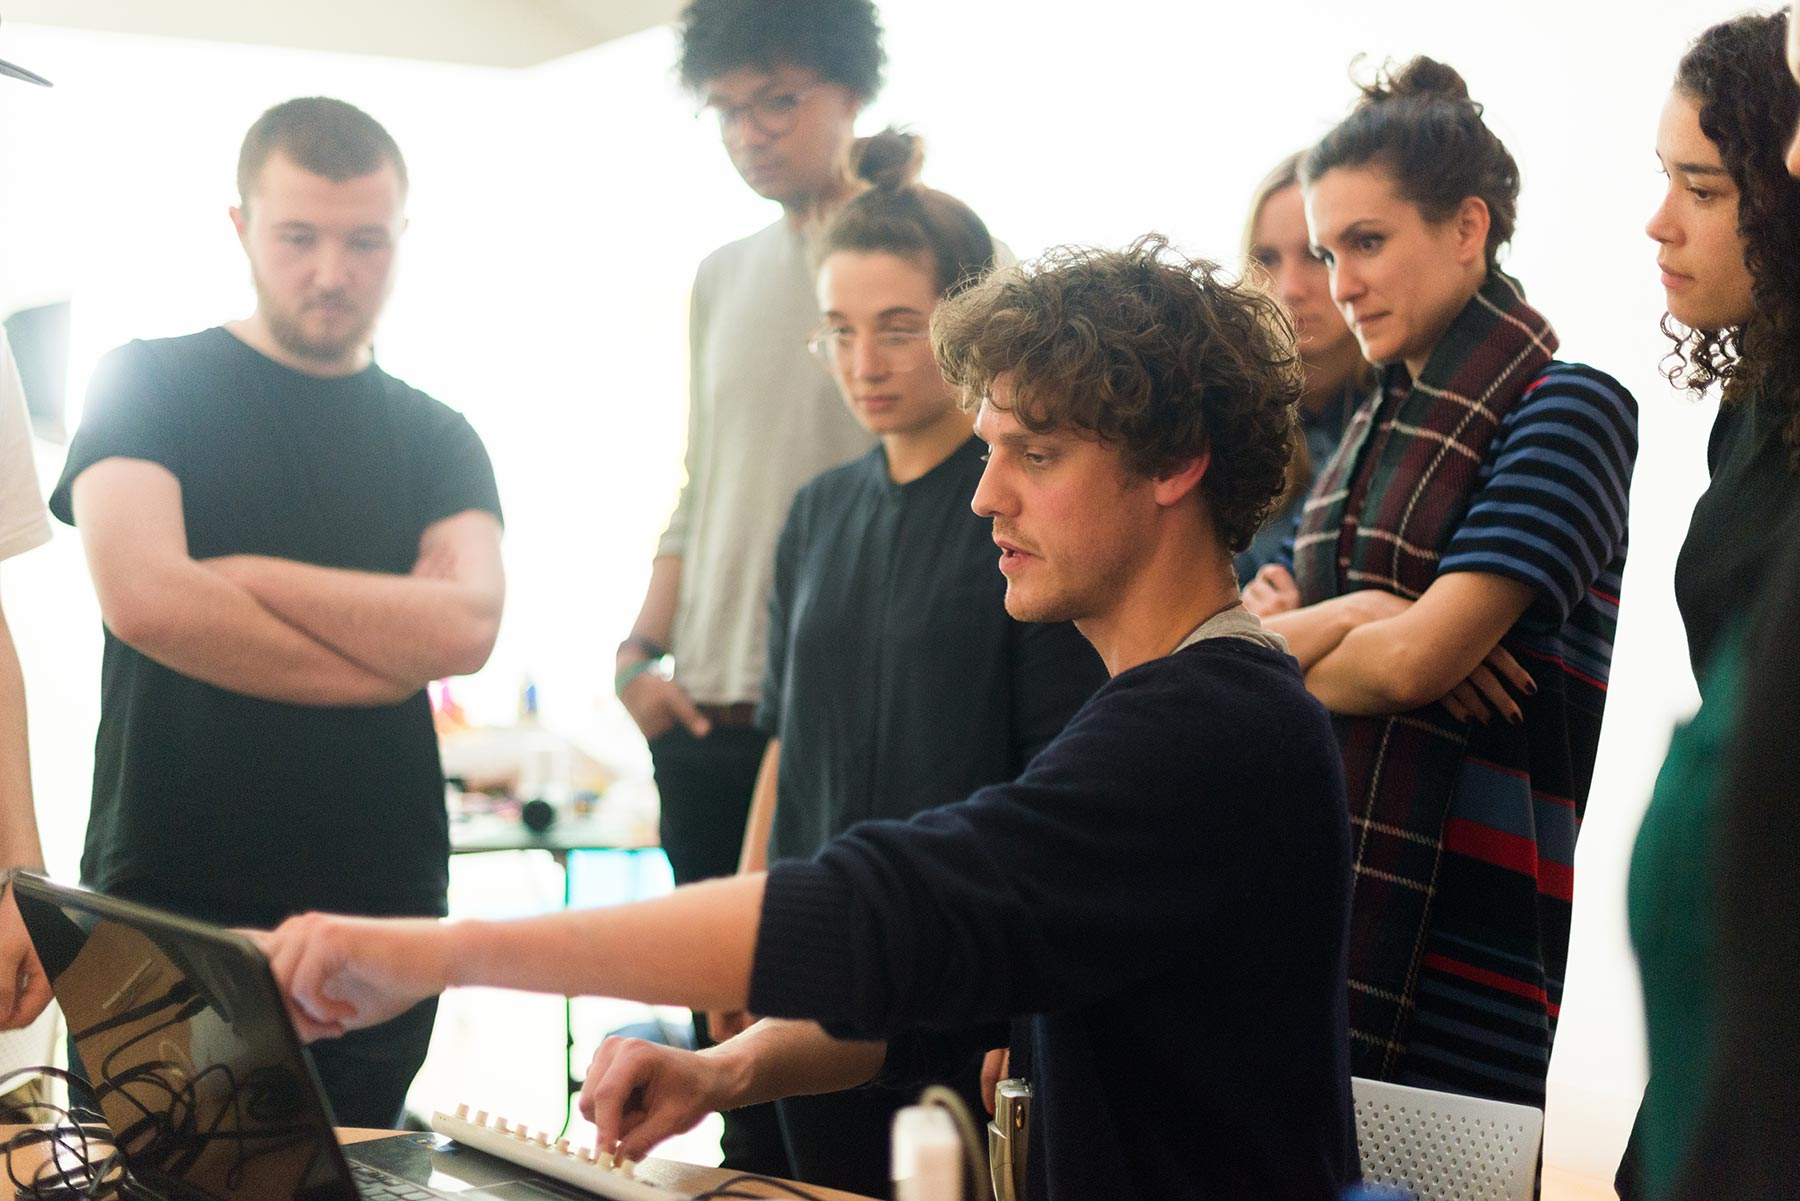 gdfs-itsnicethat-charliedoran-workshop15